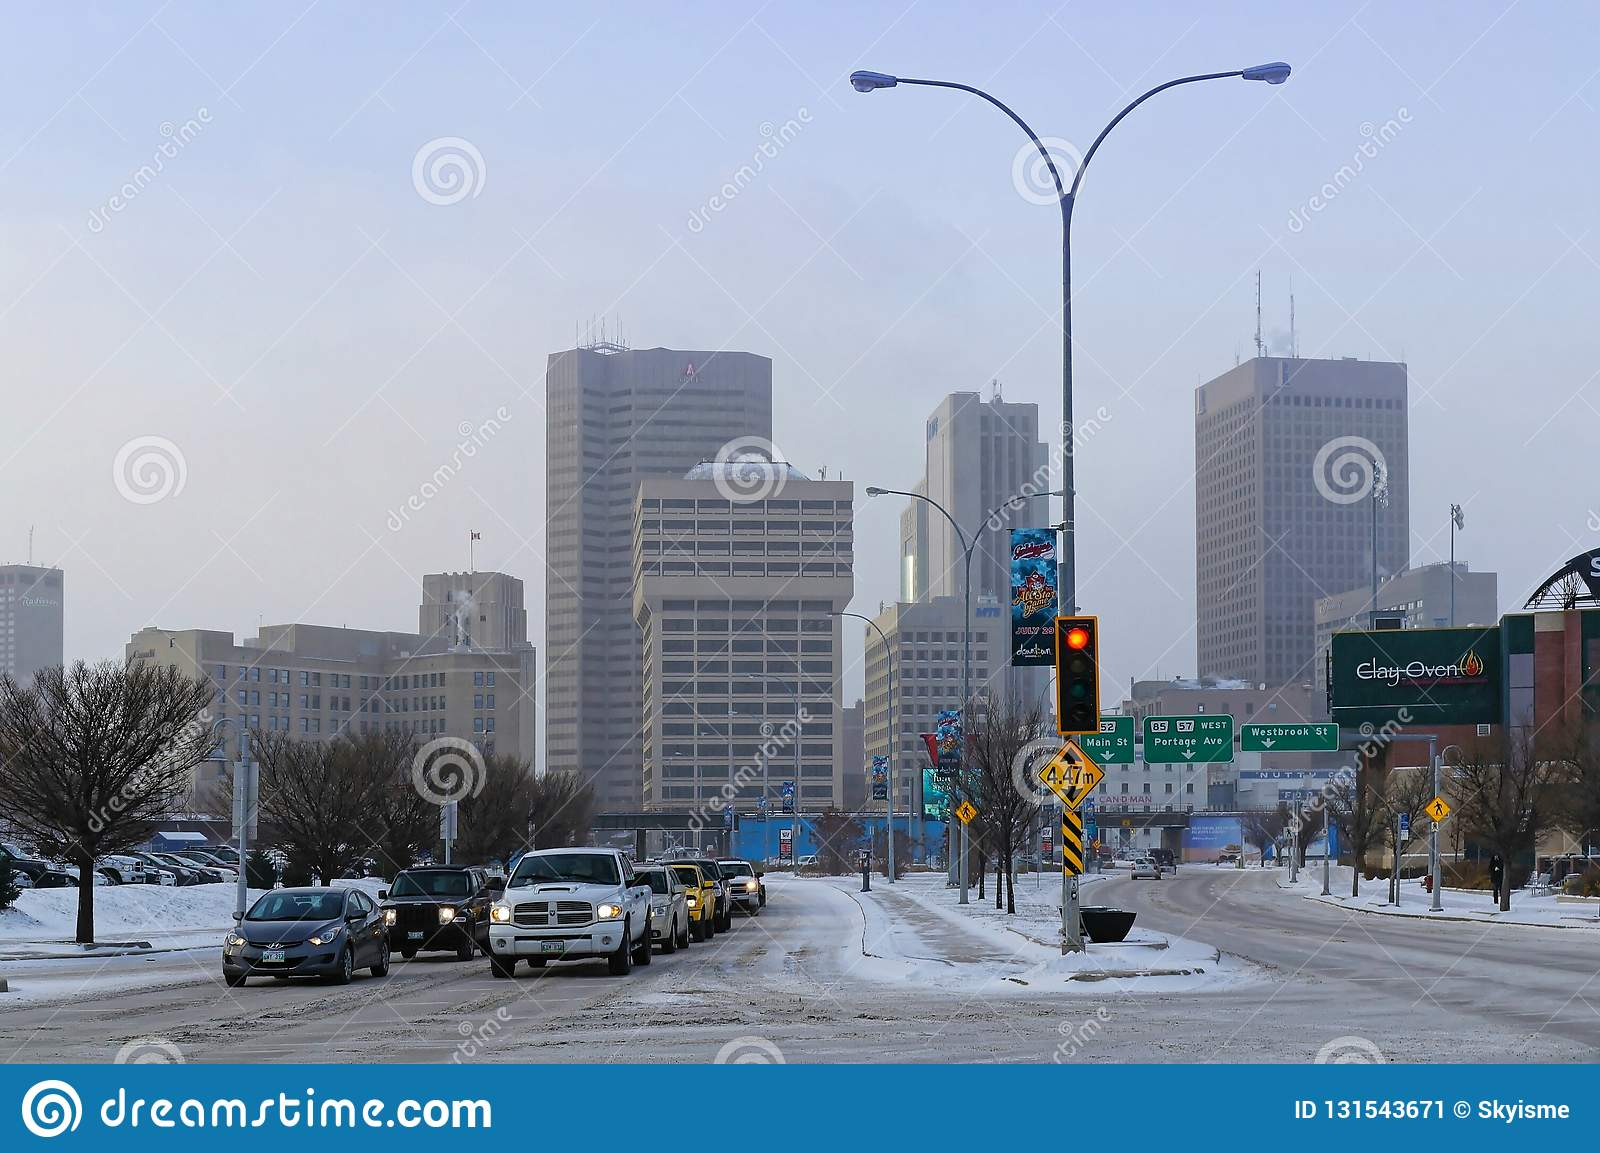 Winnipeg, Manitoba, Canada - 2014-11-18: Winnipeg Downtown